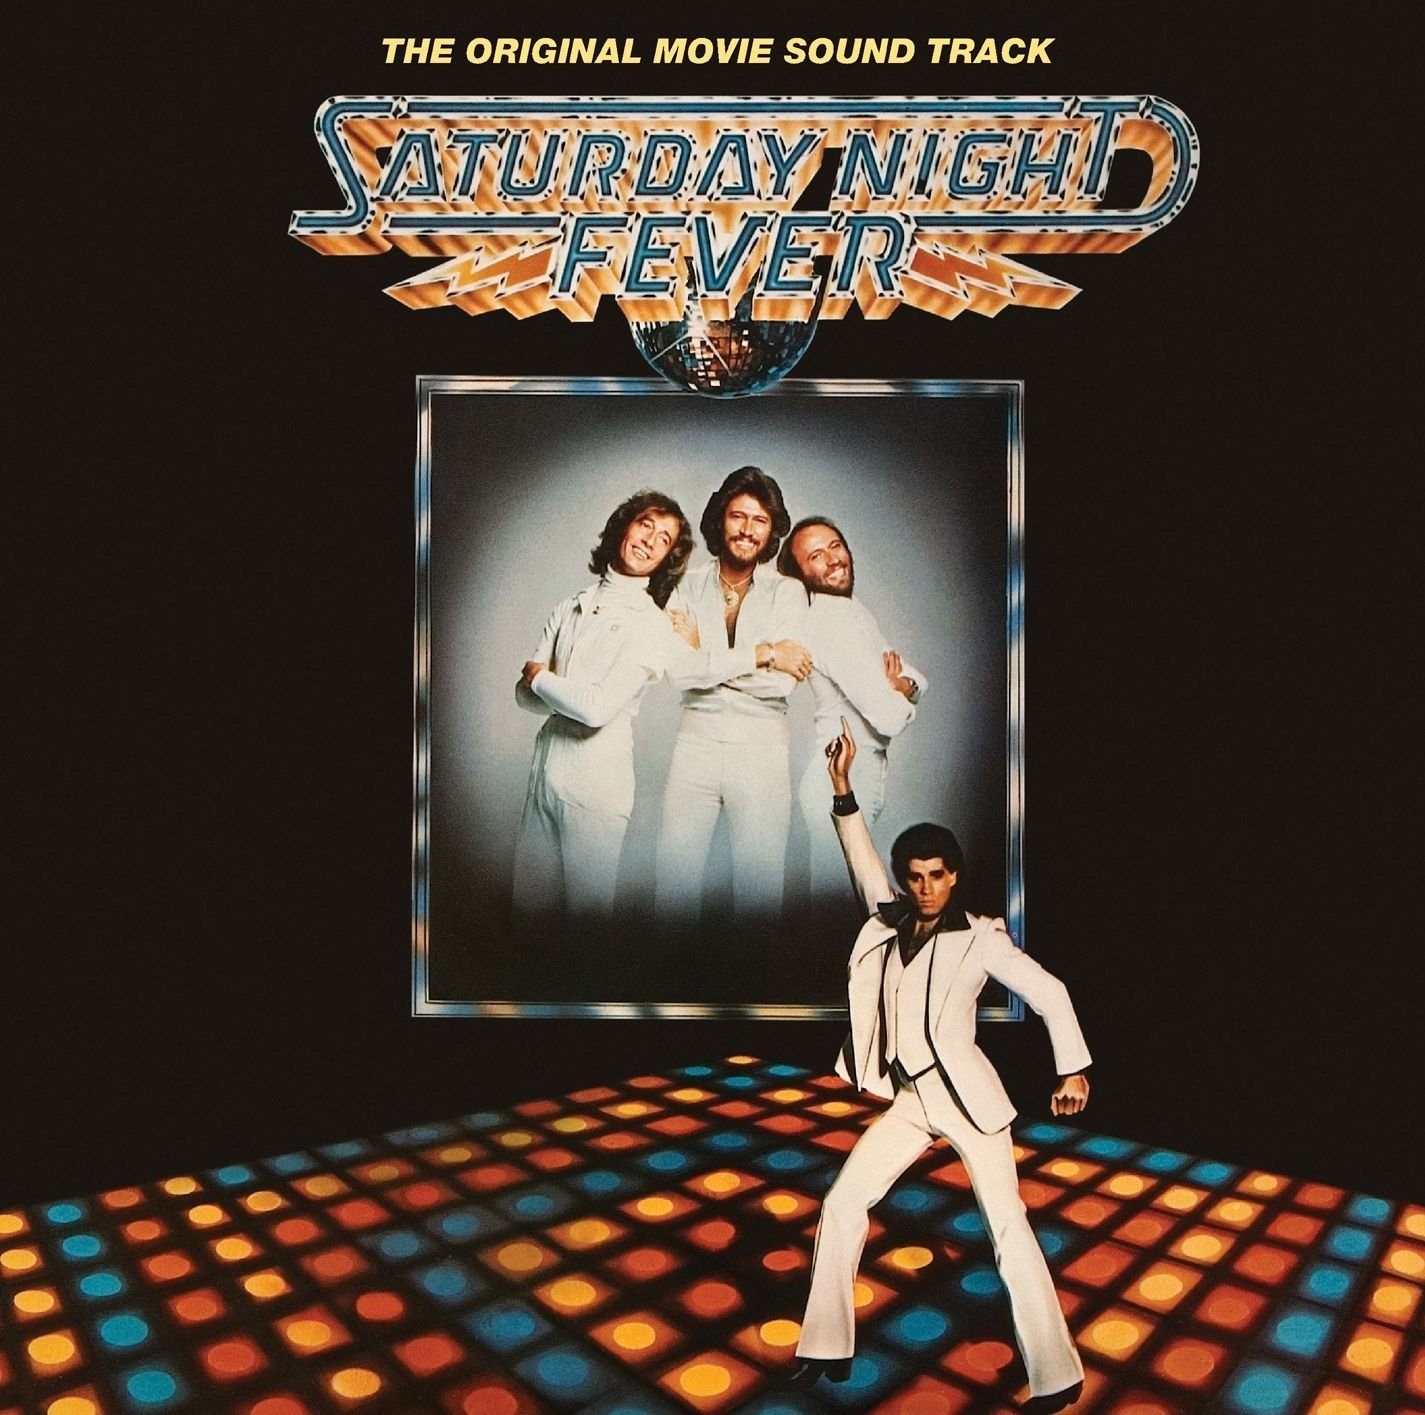 Bee Gees / Various Artists Saturday Night Fever